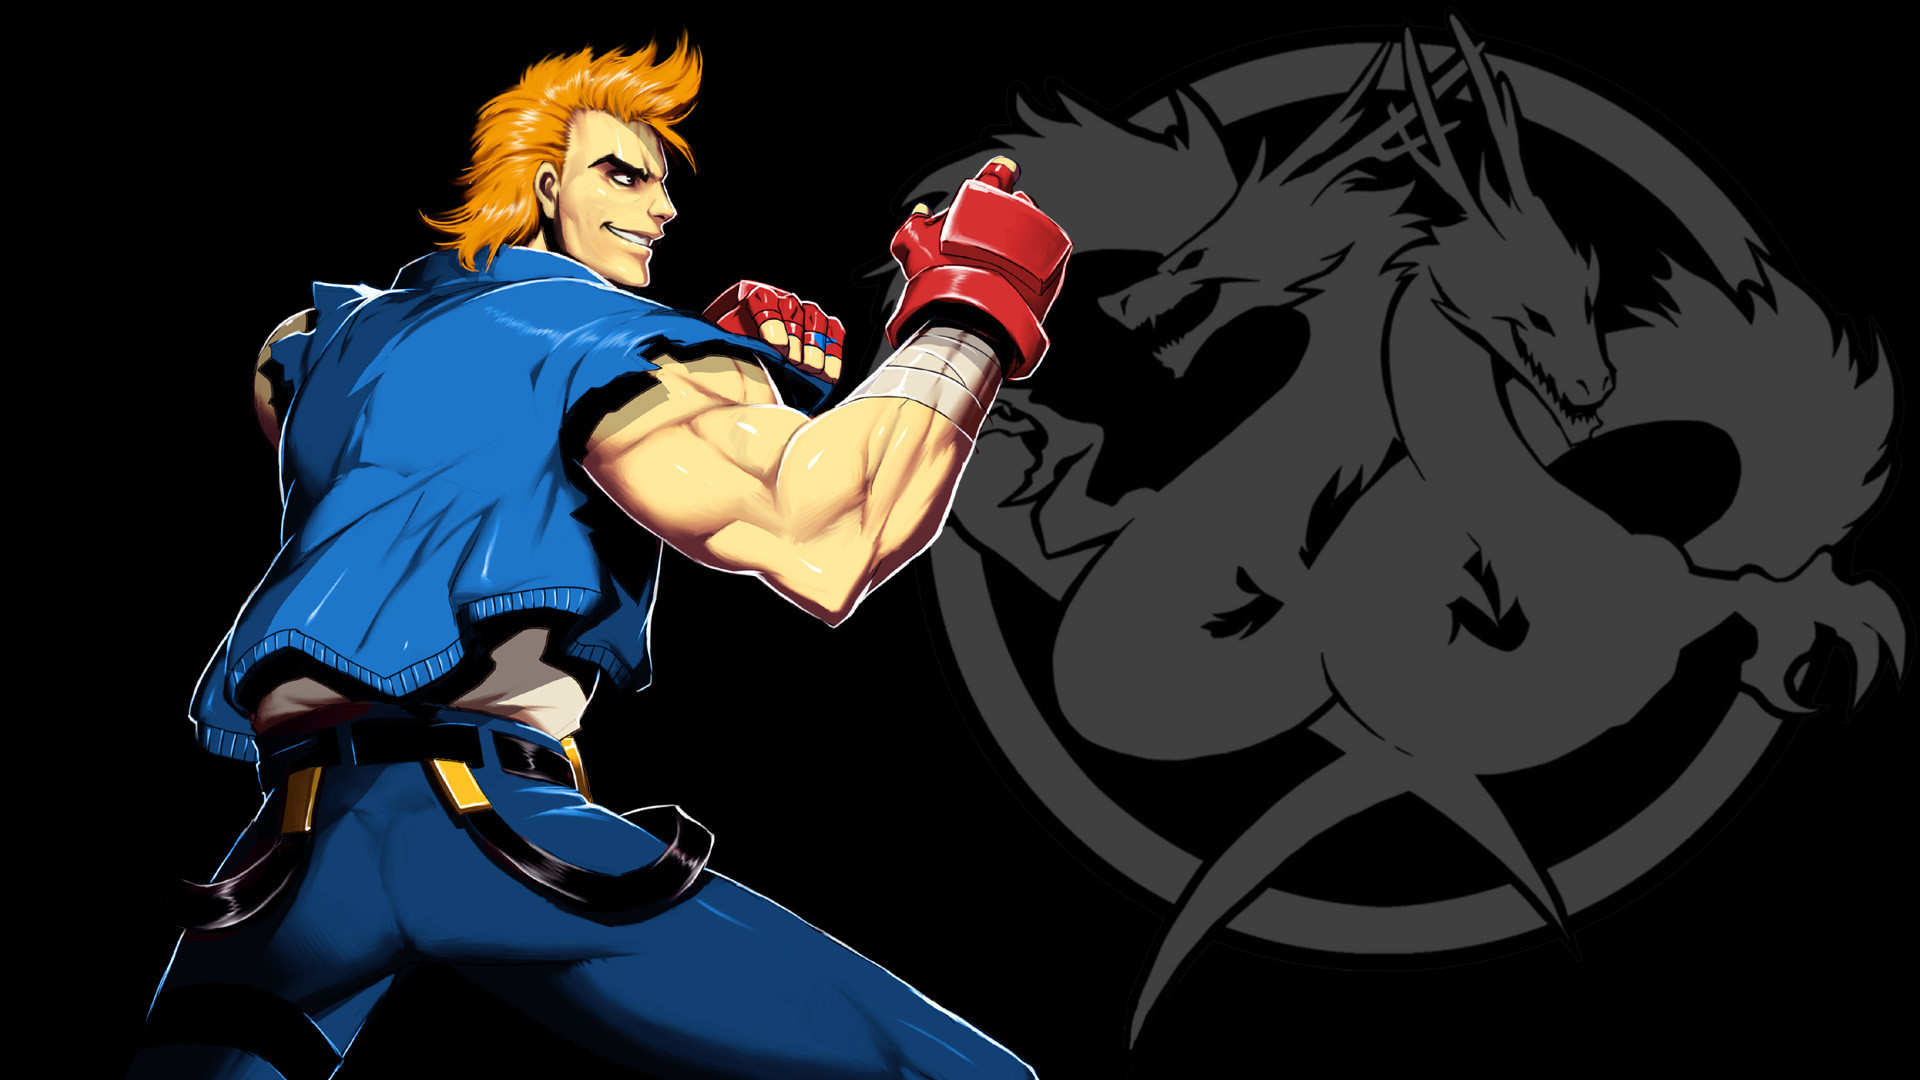 Res: 1920x1080, wallpaper #7 Wallpaper from Double Dragon: Neon